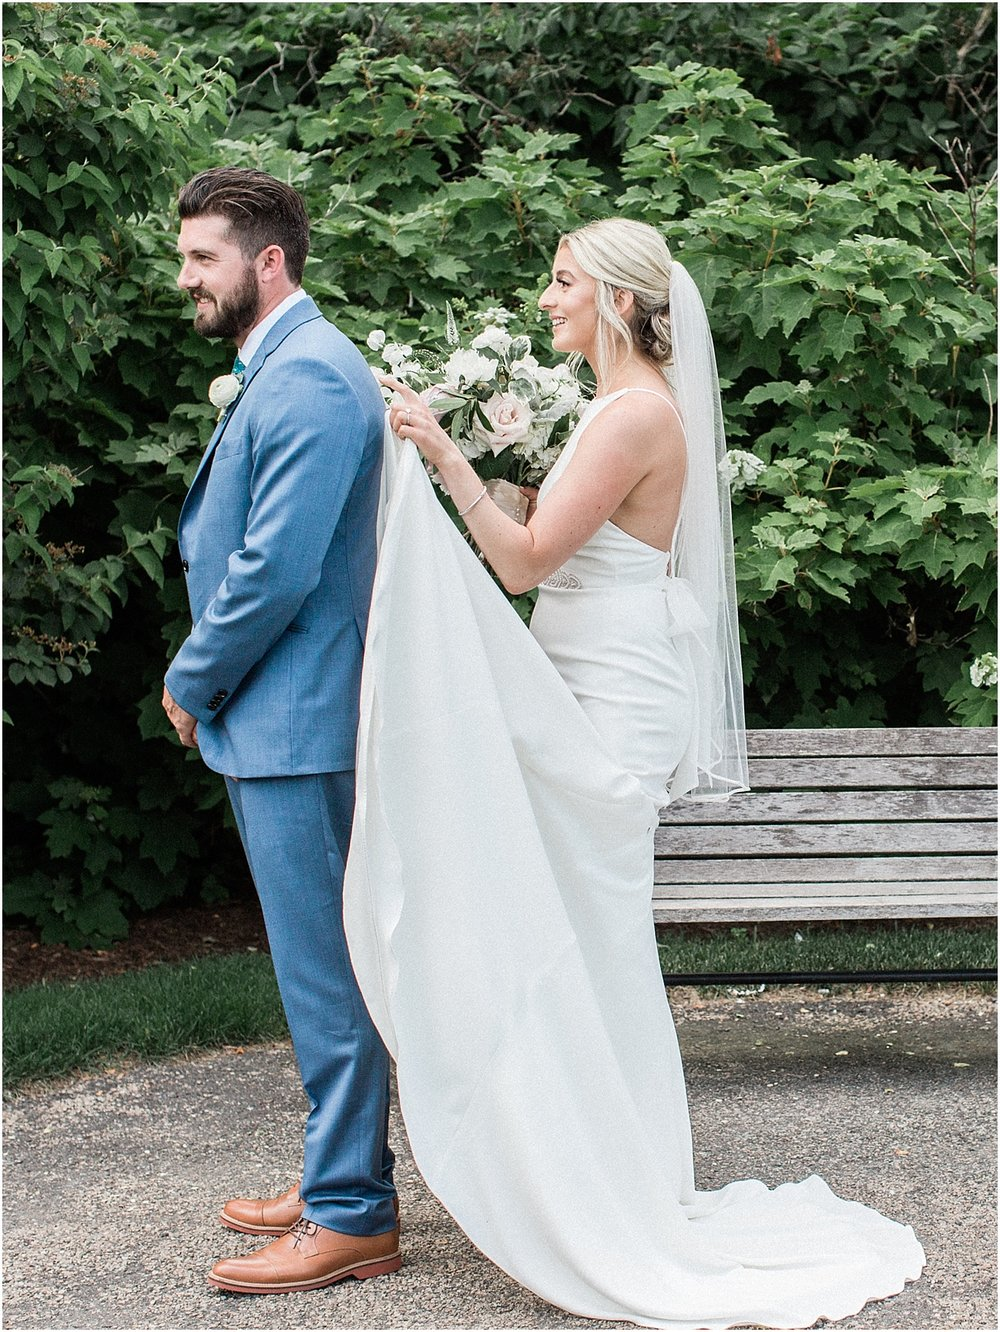 lindsey_paul_indian_pond_country_club_wild_dahlia_brewster_gardens_plymouth_cape_cod_boston_wedding_photographer_meredith_jane_photography_photo_0365.jpg